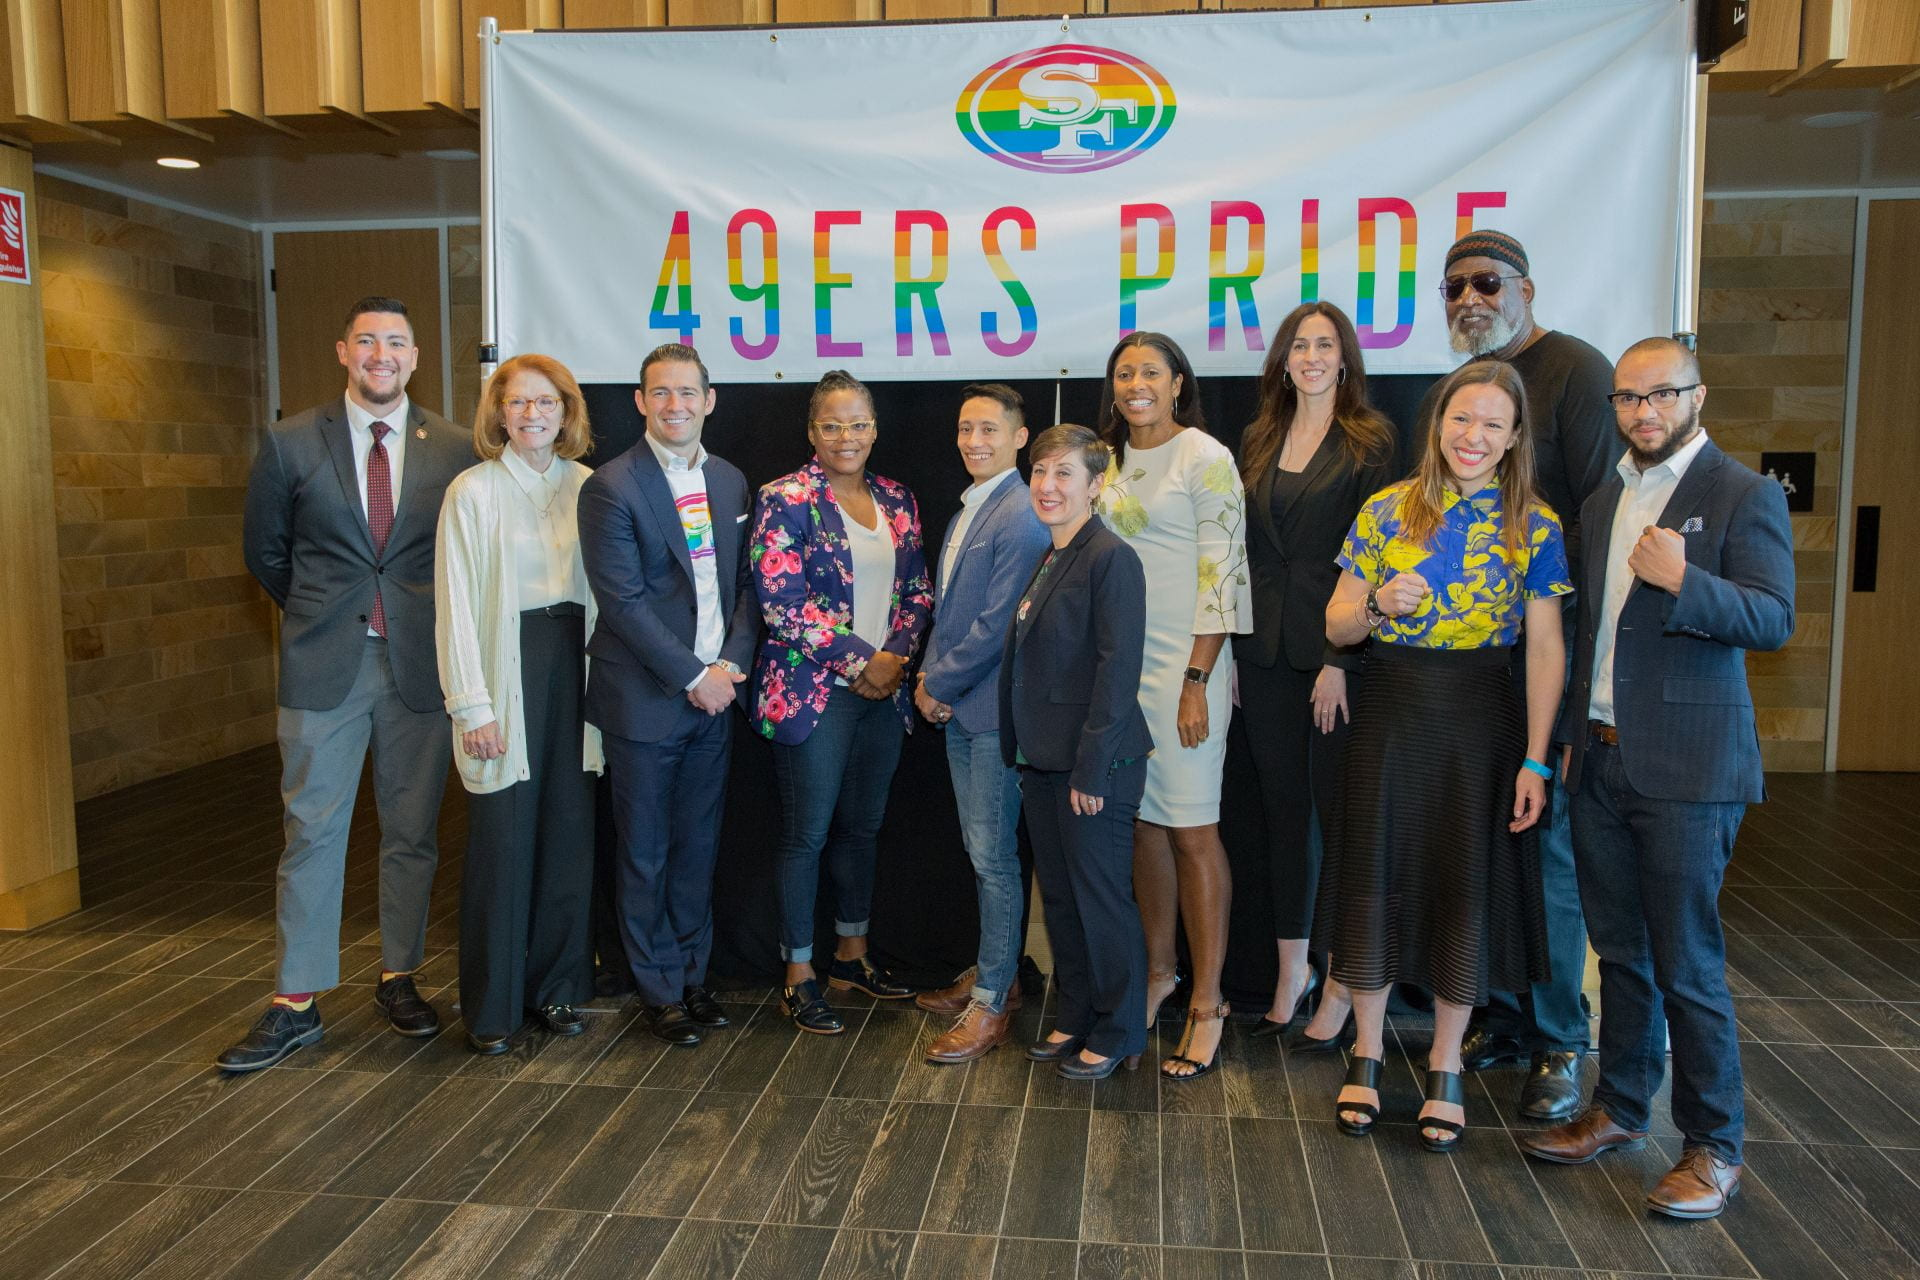 San Jose State University's Institute for the Study of Sport, Society and Social Change in partnership with the SAn Francisco 49ers hosted Words to Action: LGBTQ+ Activism in Sport May 29, at Levi's Stadium 501 Club. Photo by David Schmitz